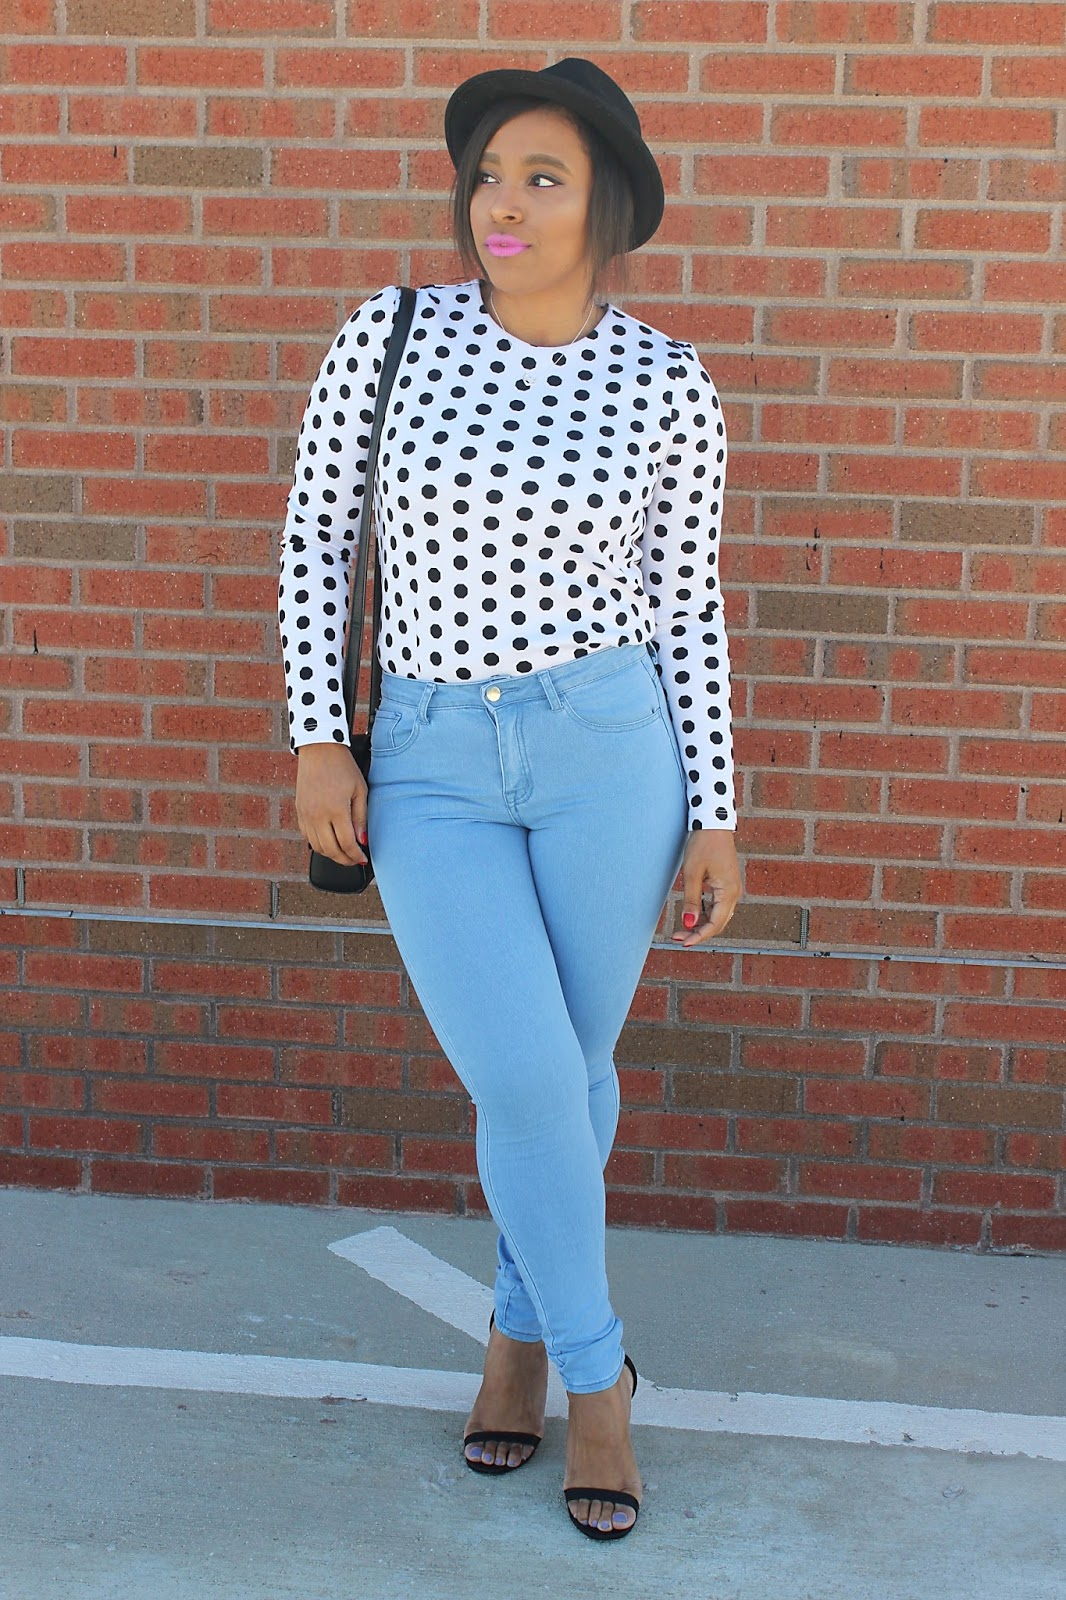 boho, forever21, polka dots, high waisted, denim